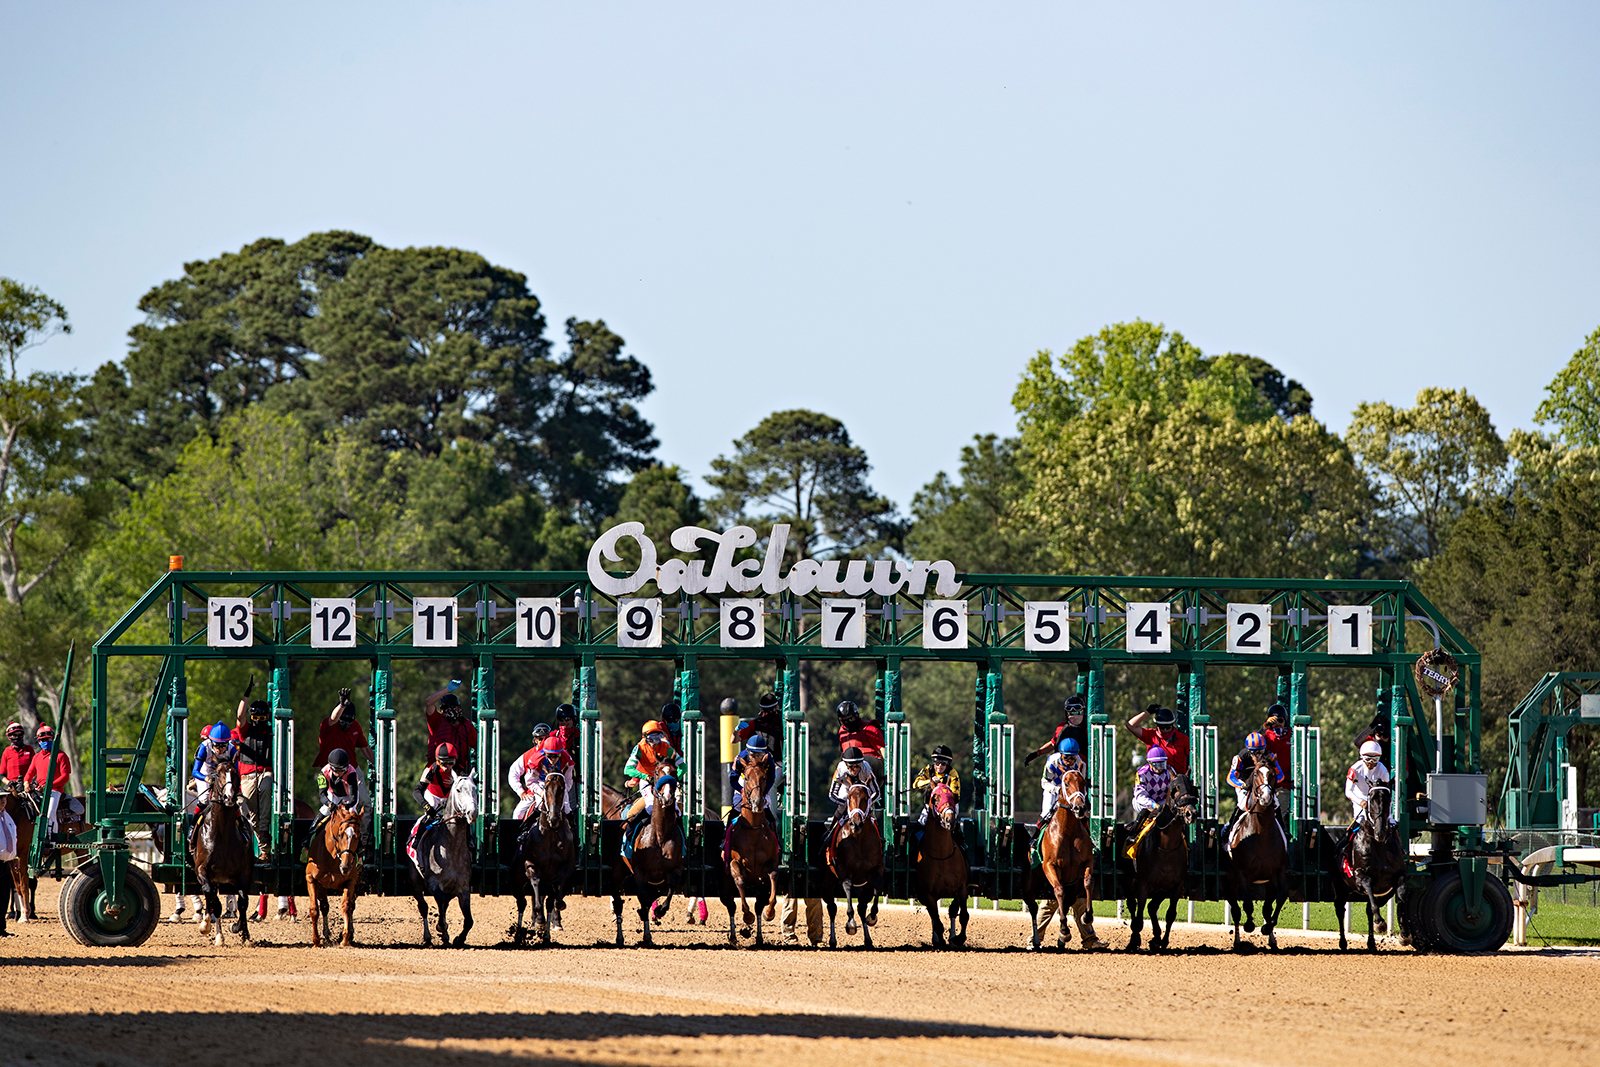 The start of the 10th race at Oaklawn Racing Casino Resort on Derby Day during the Covid-19 pandemic on Saturday, May 2, in Hot Springs, Arkansas.